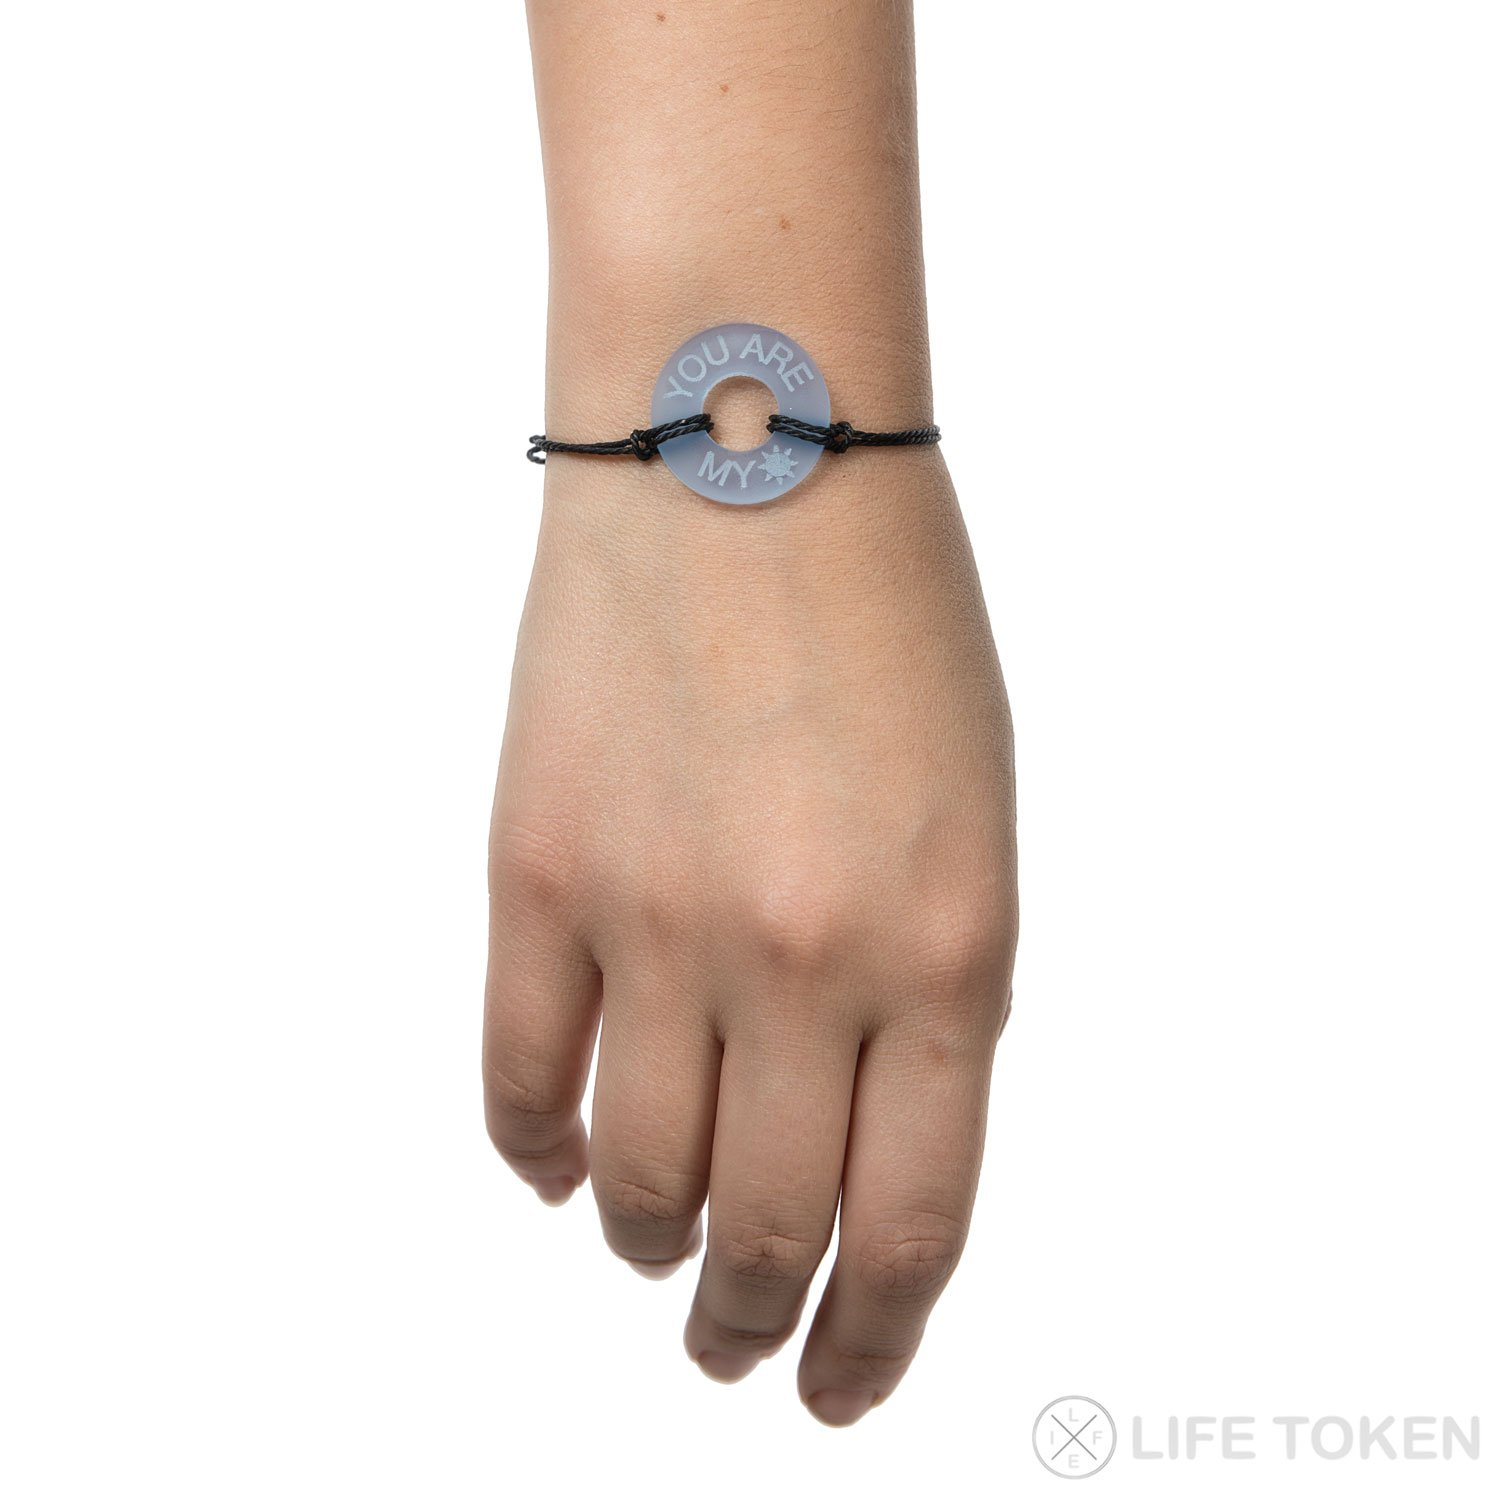 Life Token Custom Handmade Personalized Engraved Message You are My Sunshine Novelty Jewelry Bracelet for Both Men and Women (Blue Token with Black String) by Life Token (Image #2)